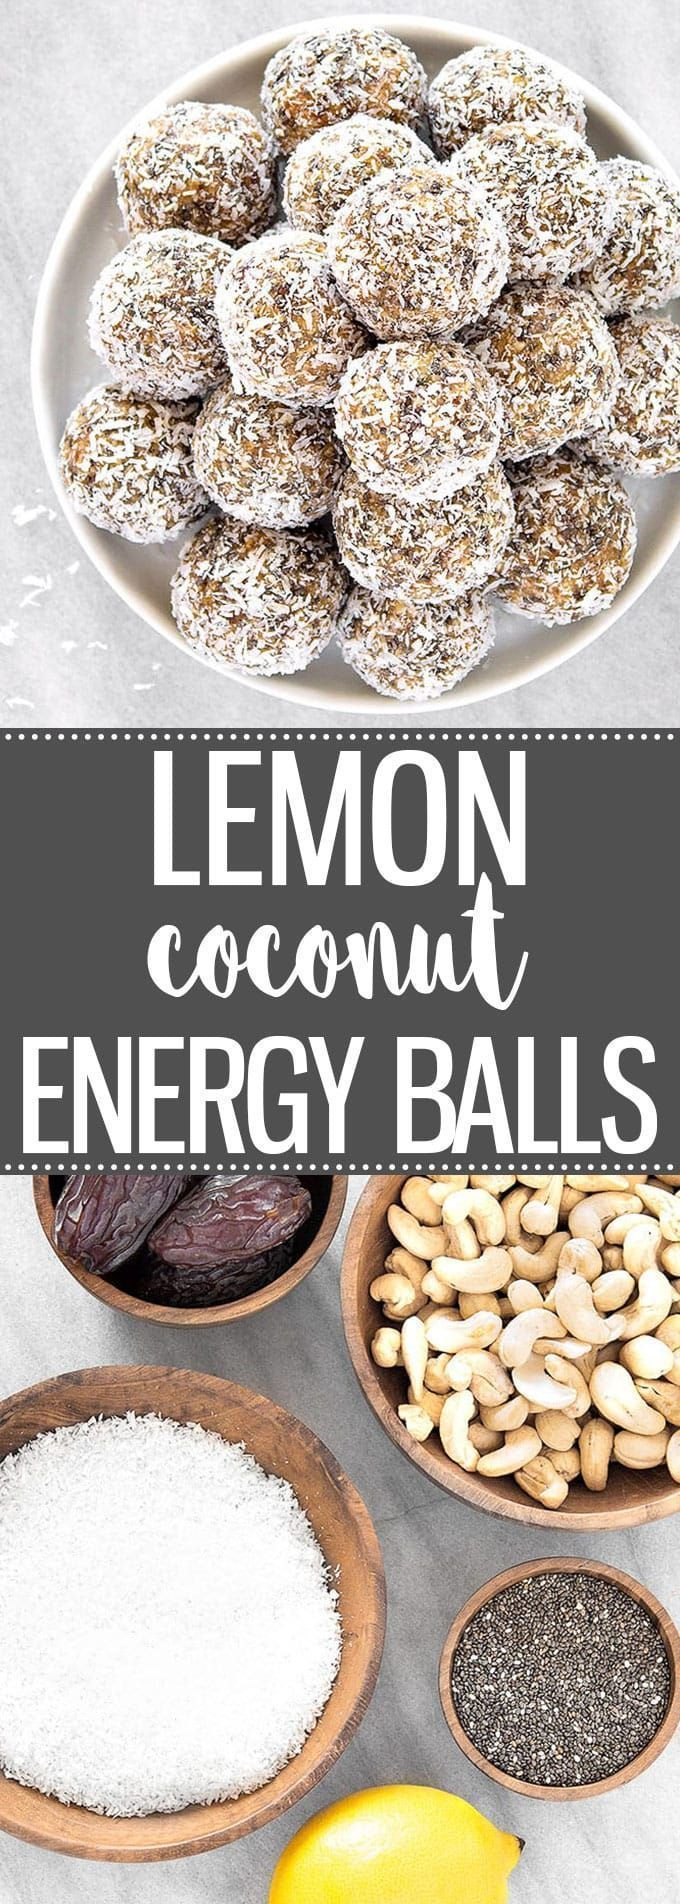 Healthy Lemon Coconut Energy Balls  #Balls #Coconut #Energy #Healthy #Lemon  #Health #Health #fitnes...